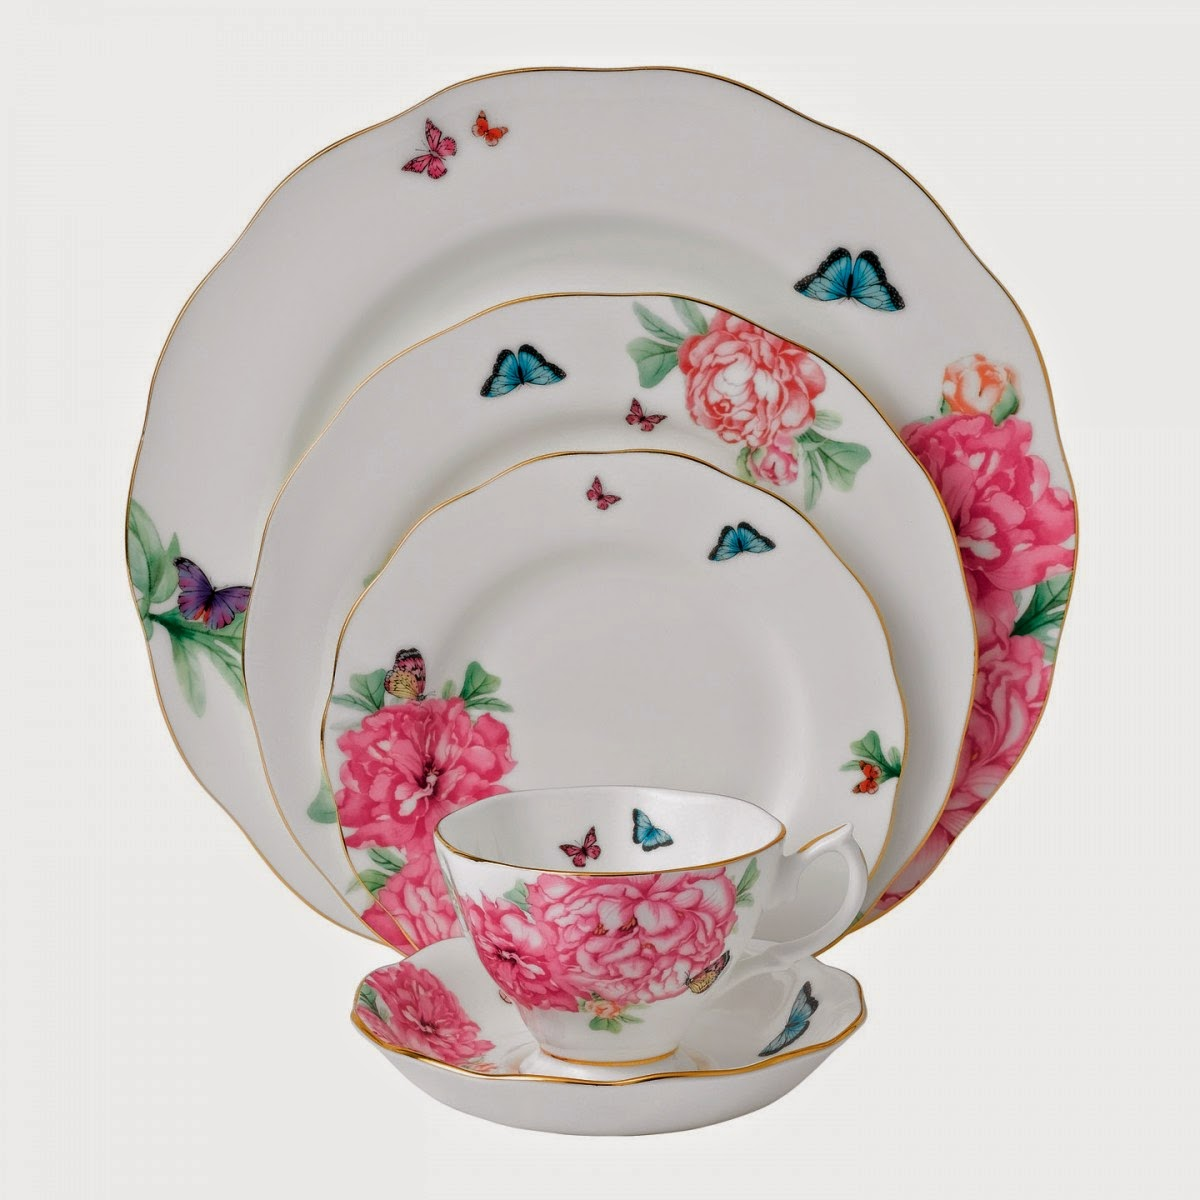 http://www.royalalbert.com/friendship-5-piece-place-setting